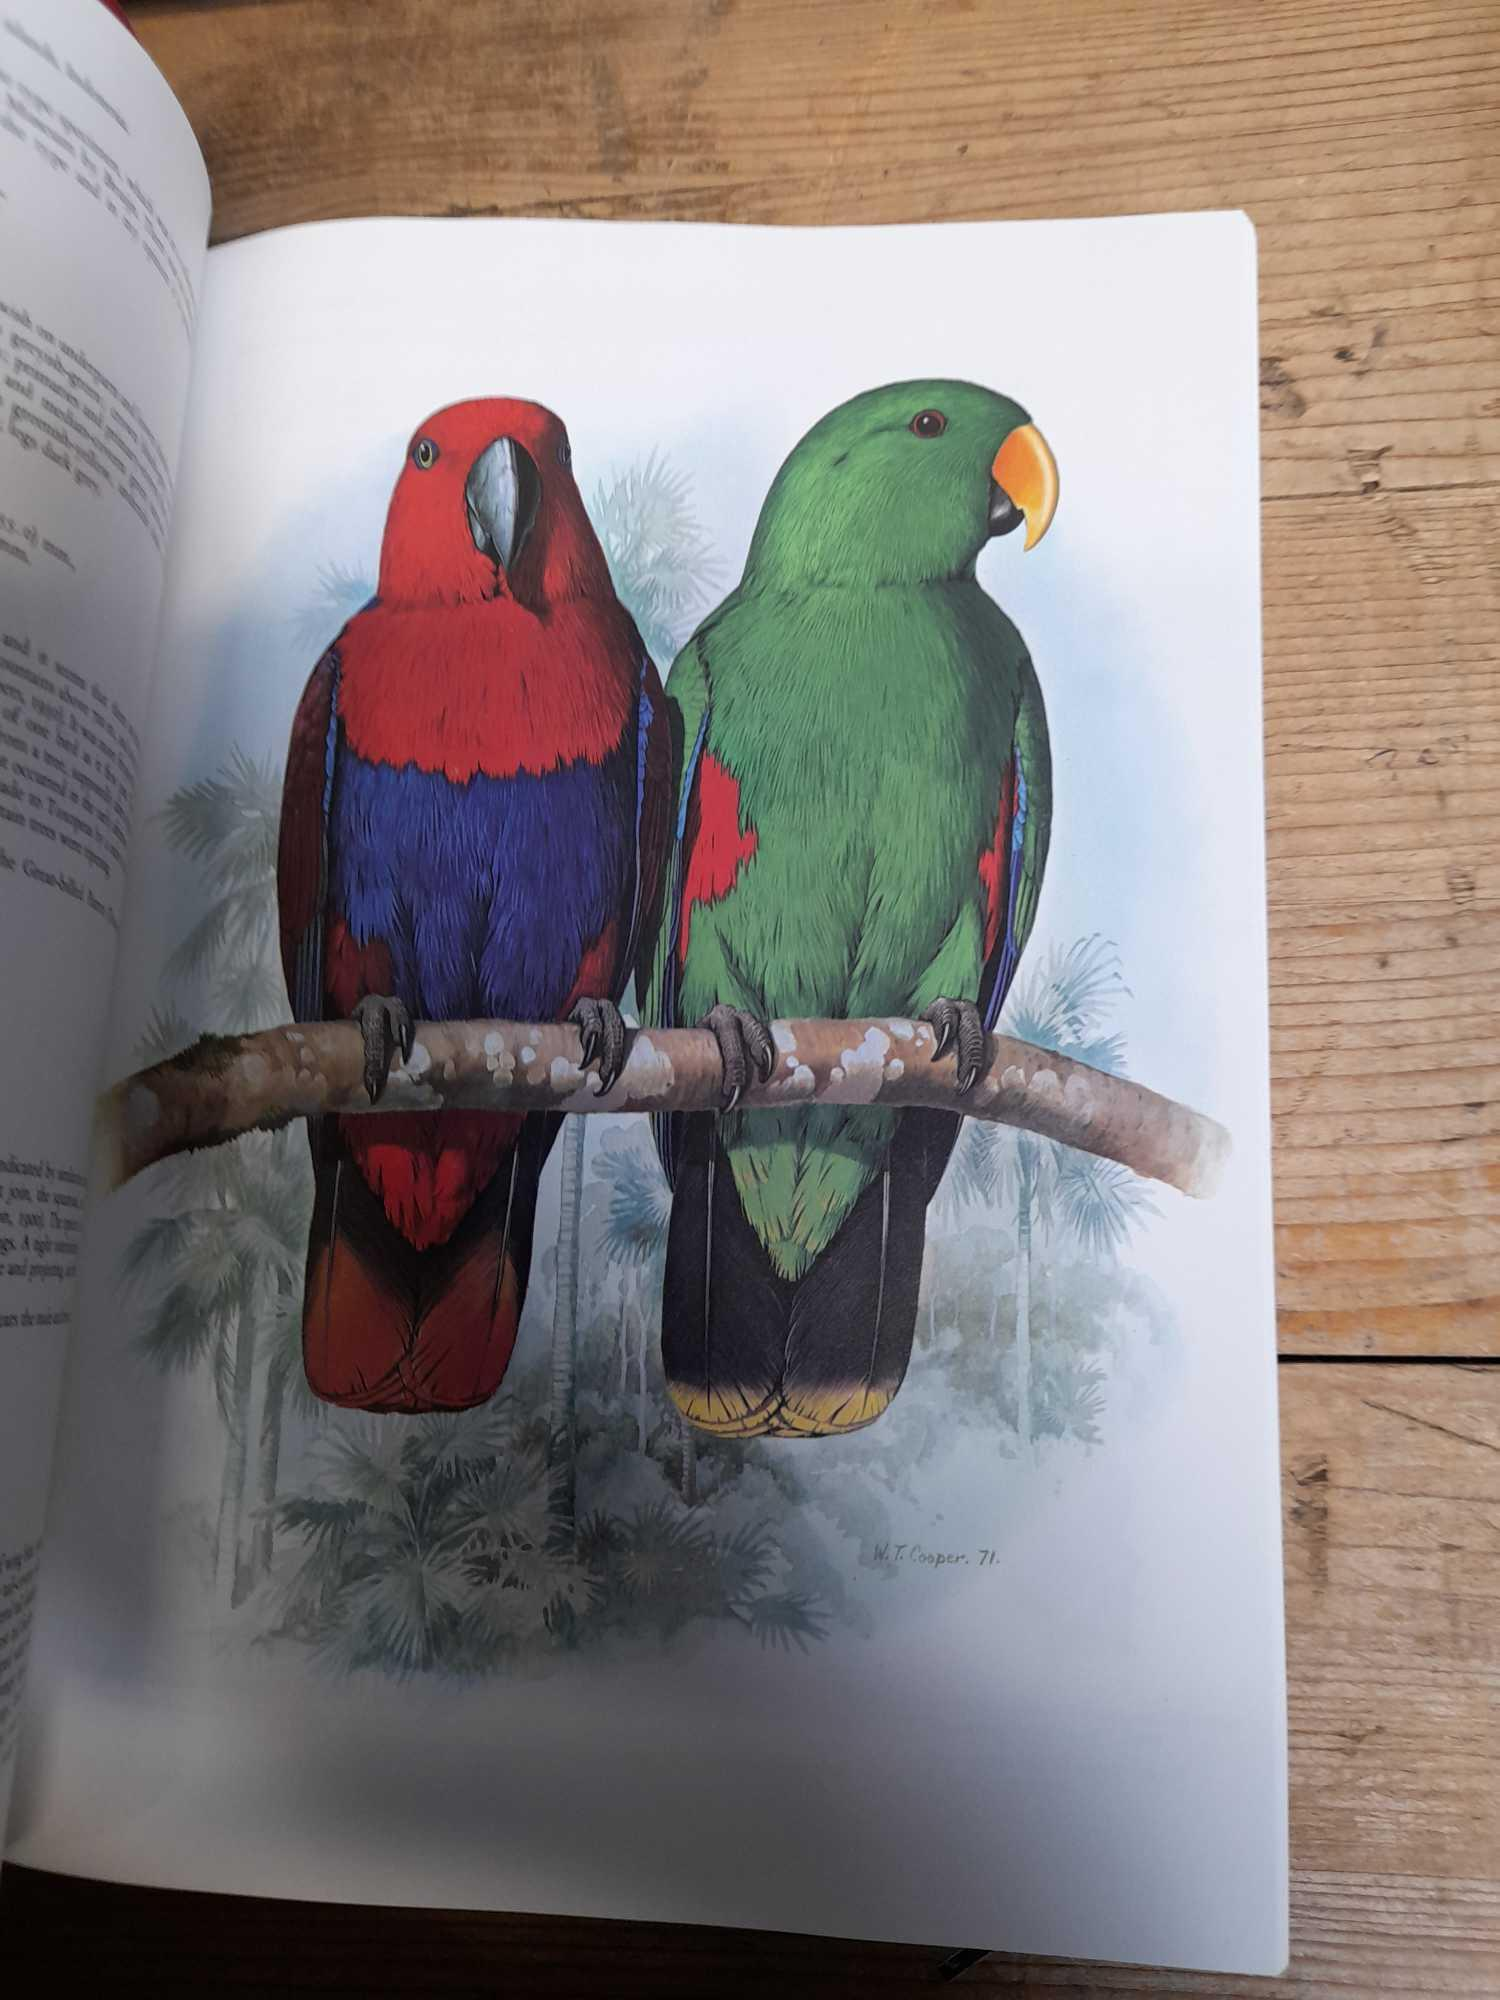 3 PARROT BOOKS - Image 11 of 20